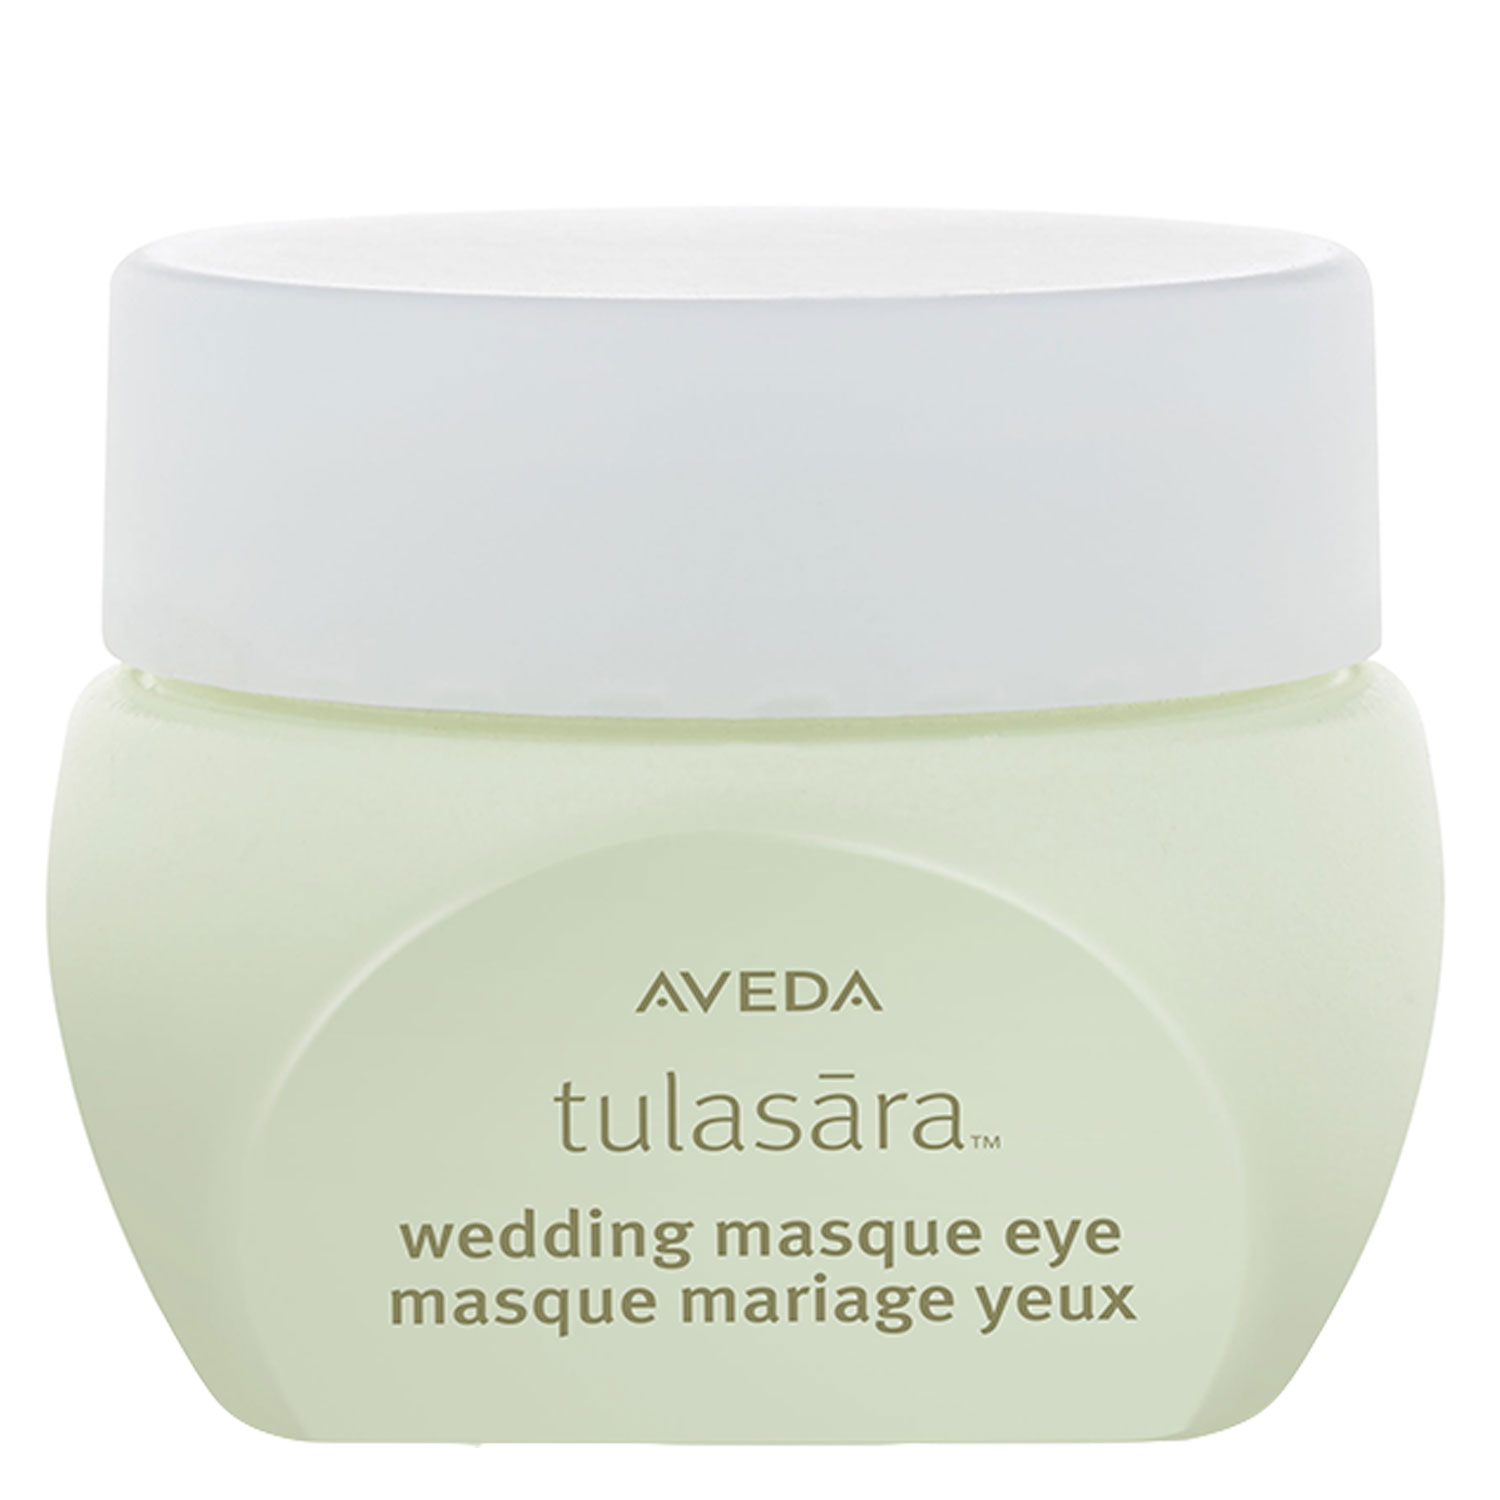 tulasara - wedding masque eye overnight